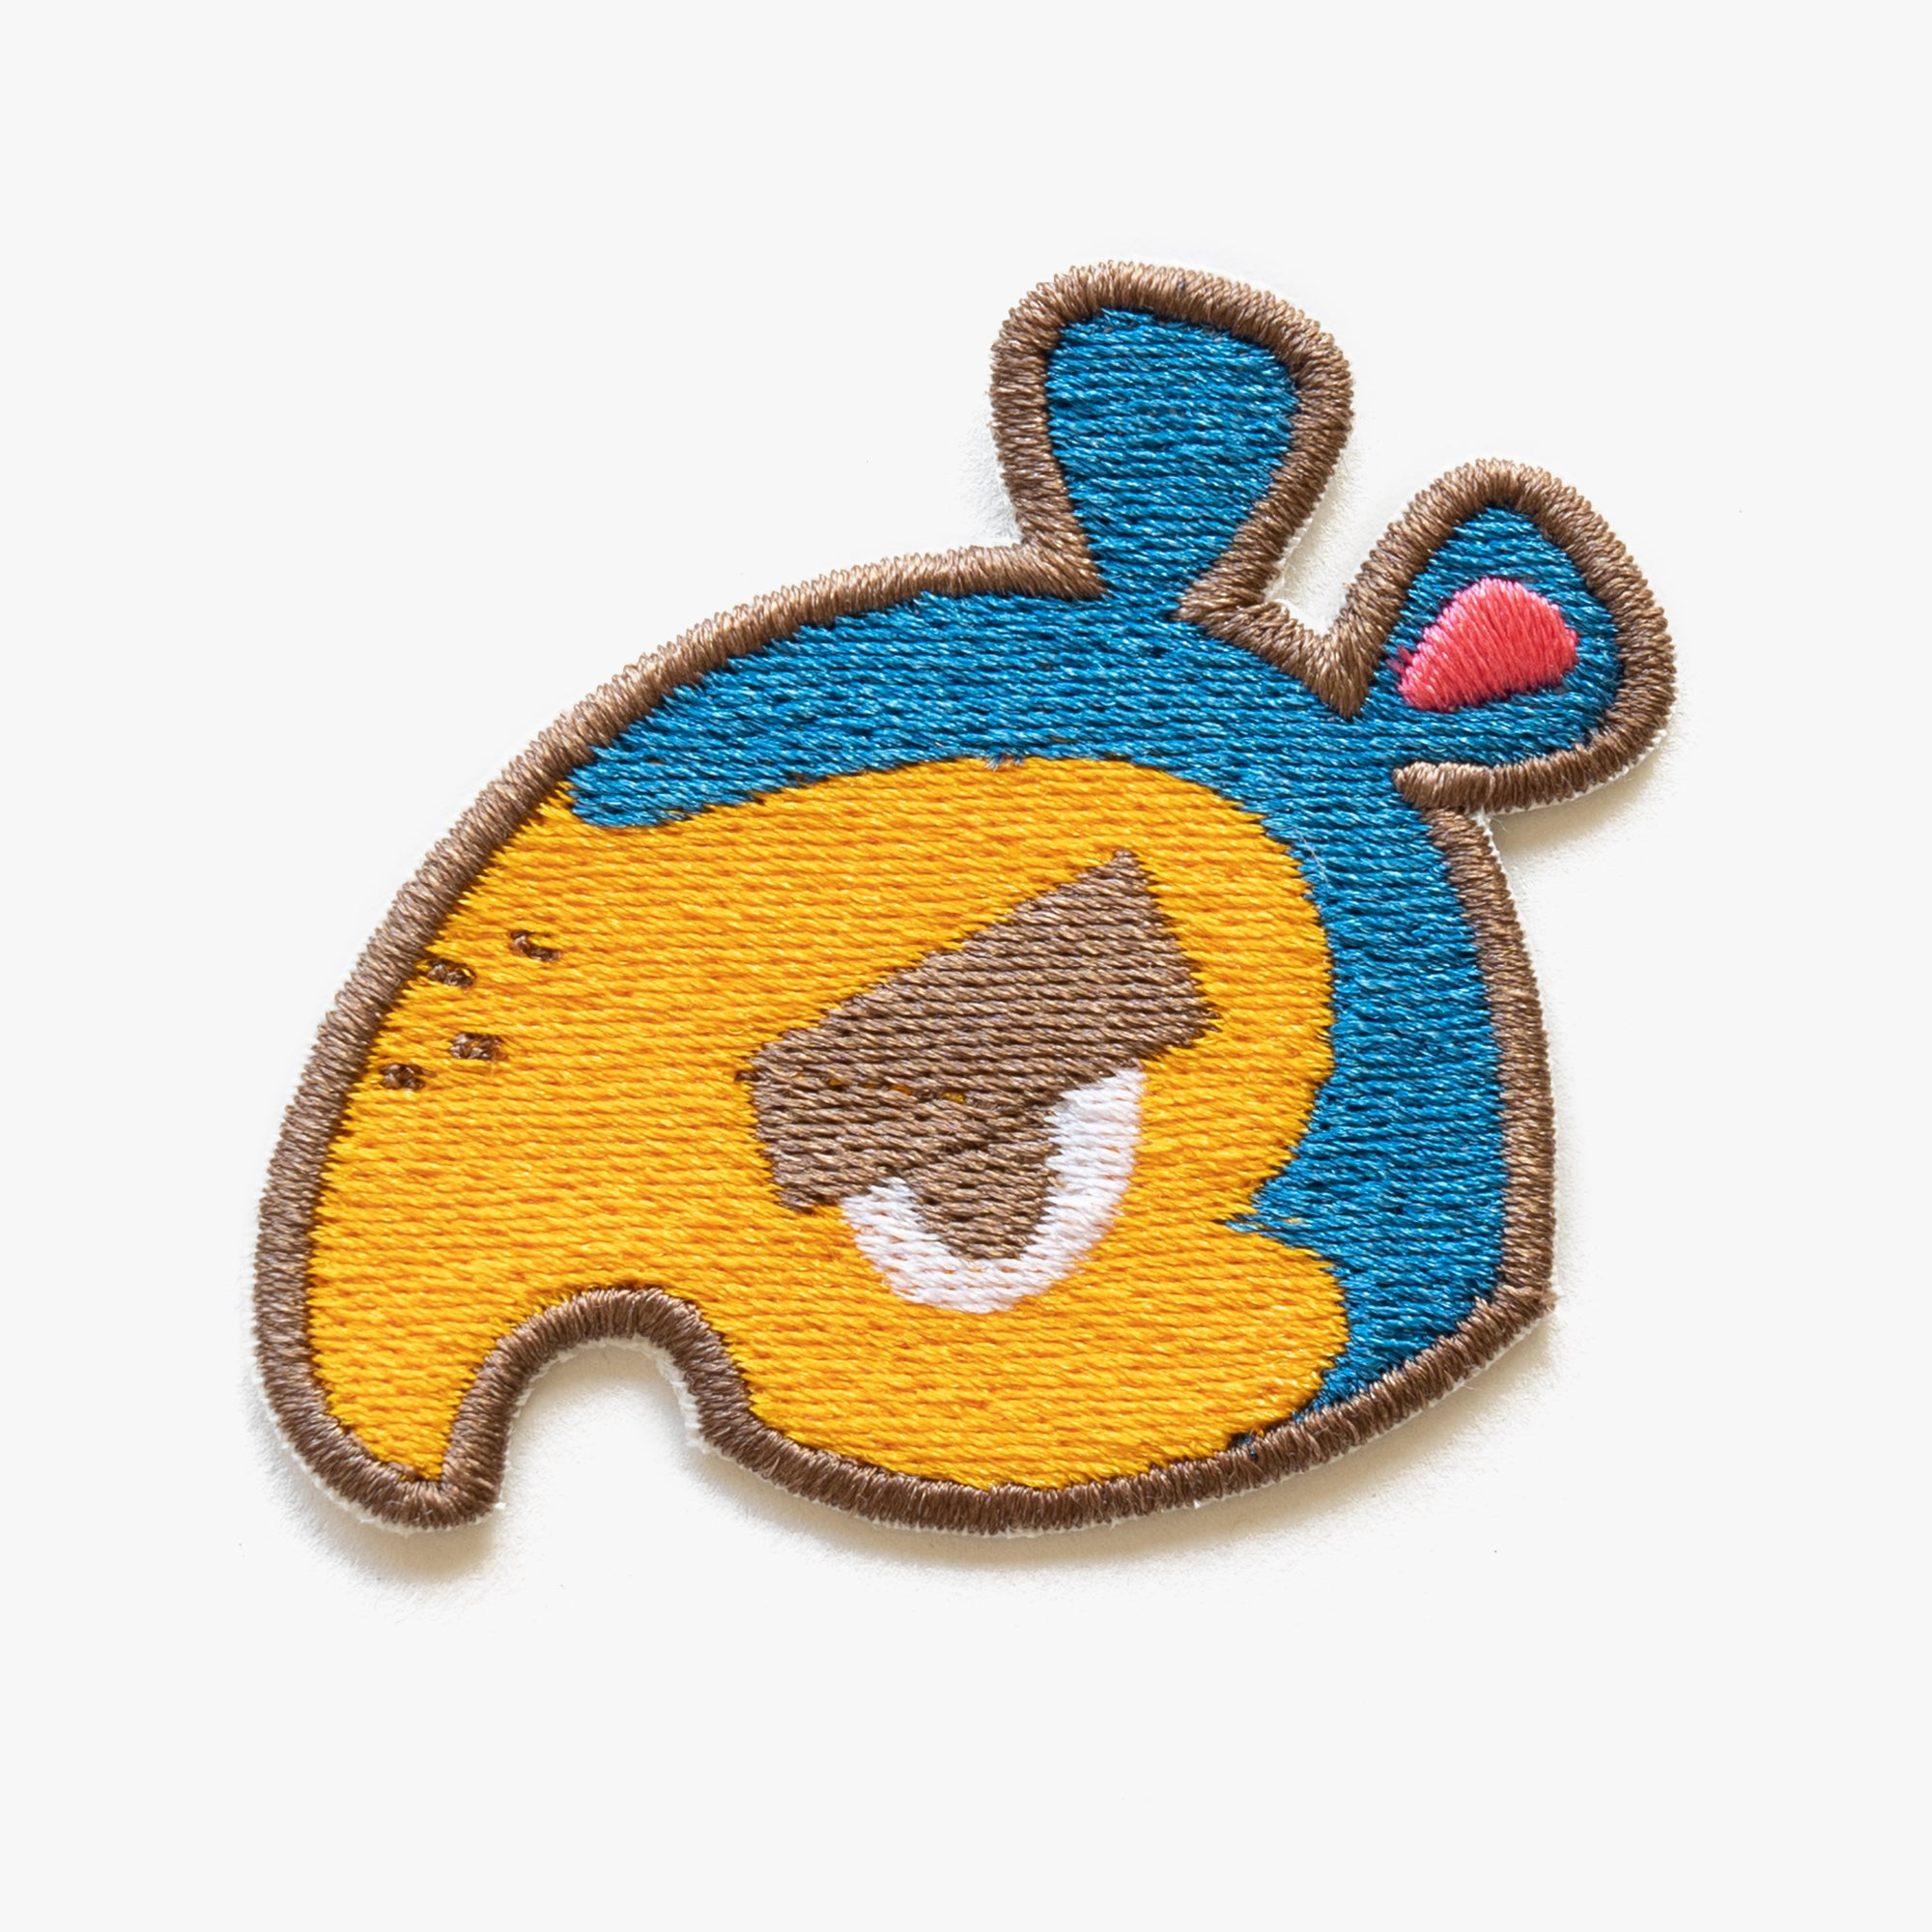 Cyrano Animal Crossing Embroidered Patch (Homemade)